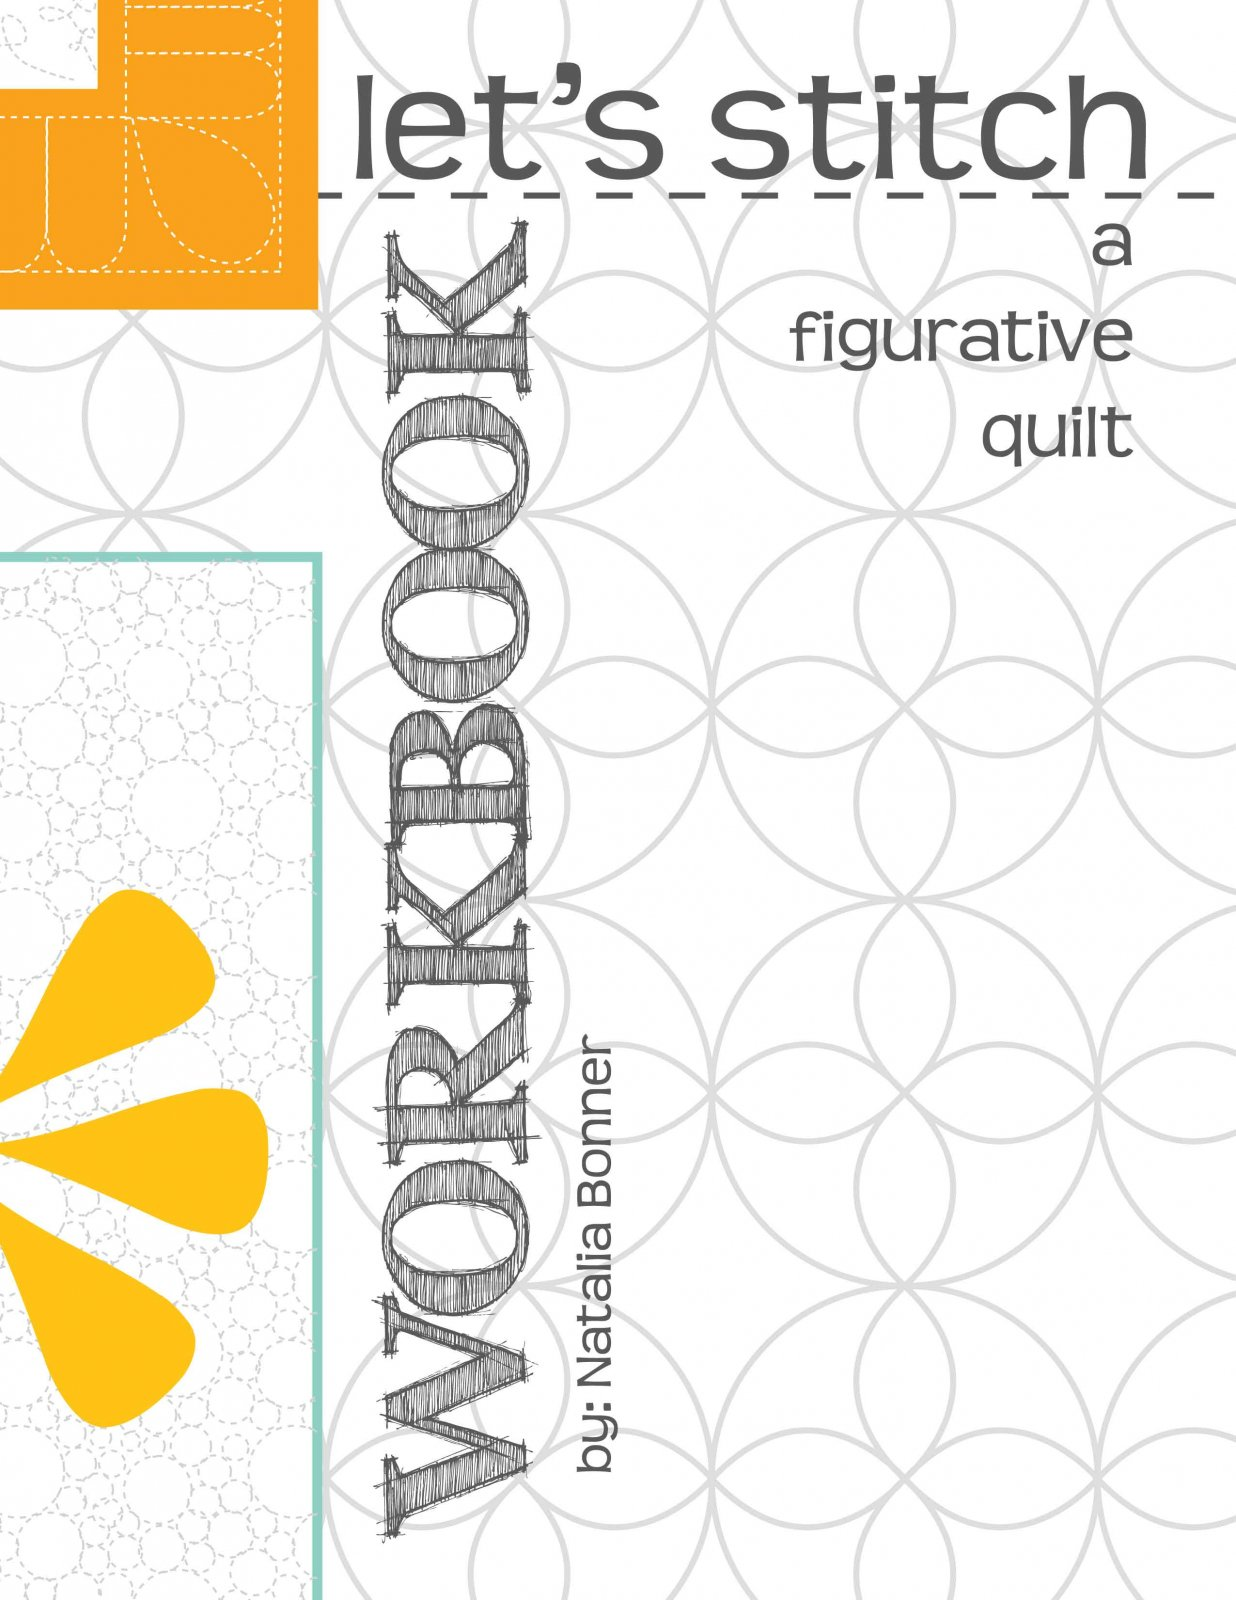 Let's Stitch a Figurative Quilt - Design Workbook